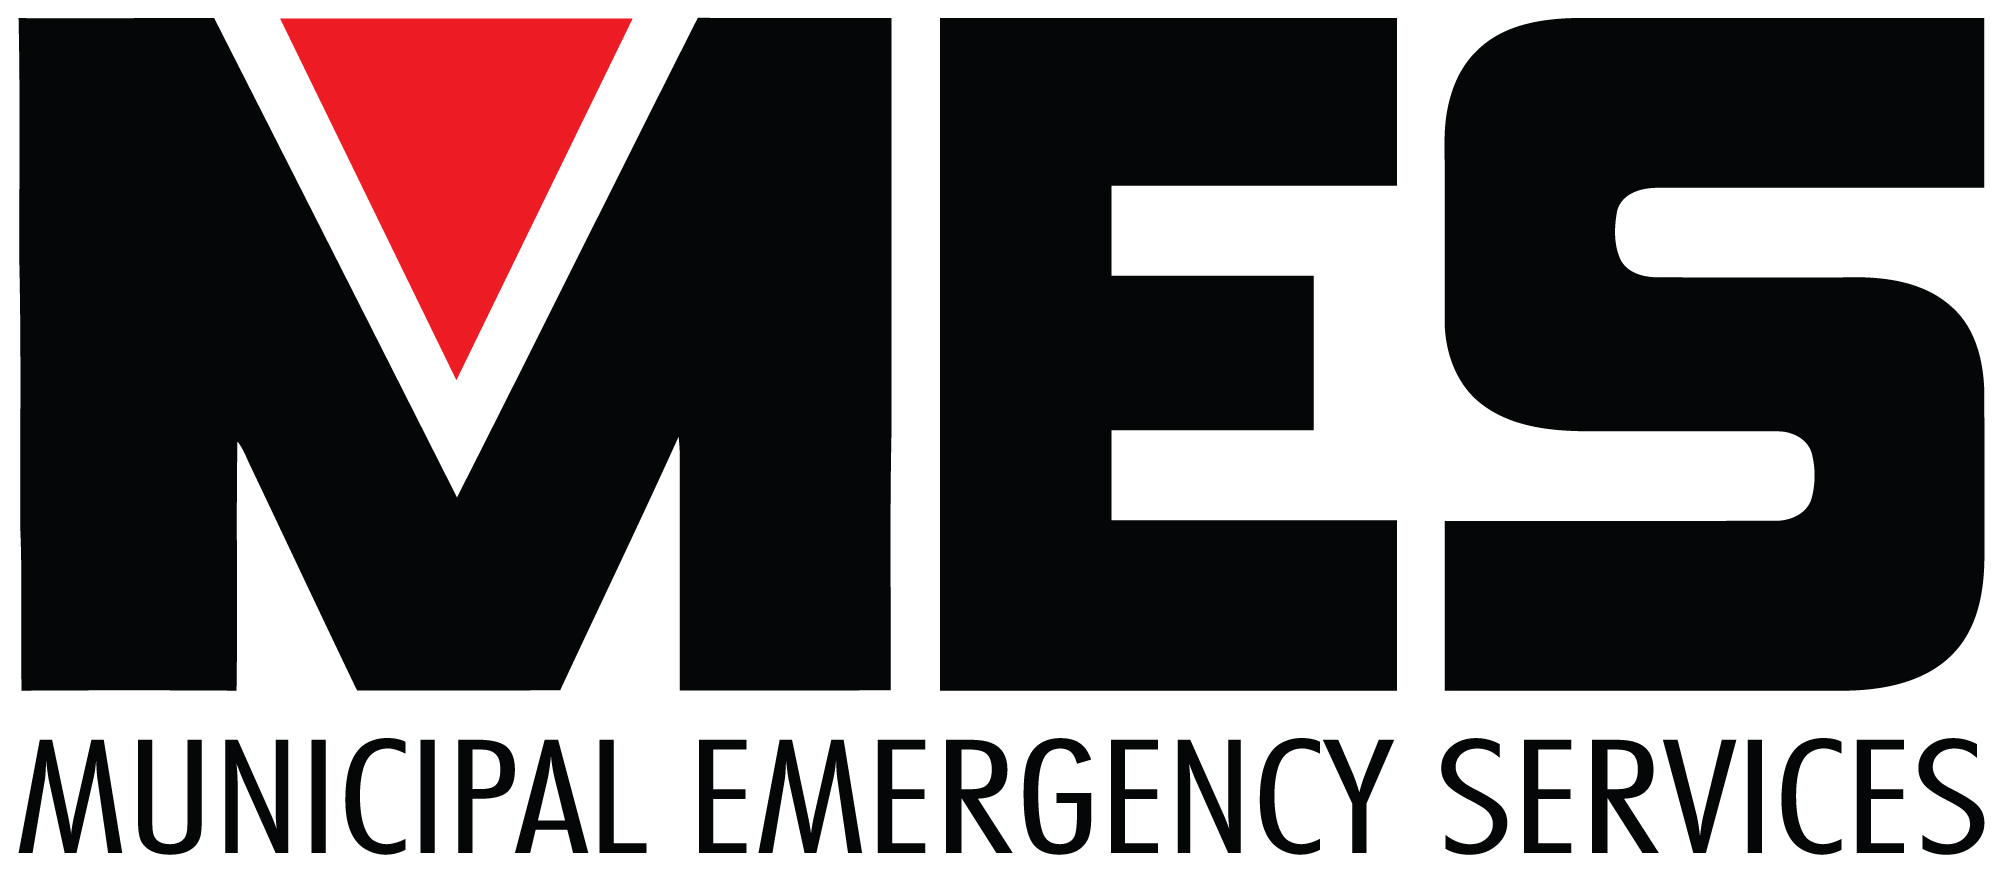 Municipal Emergency Services, Inc. Completes Acquisition of The Rescue Store in Pennsylvania